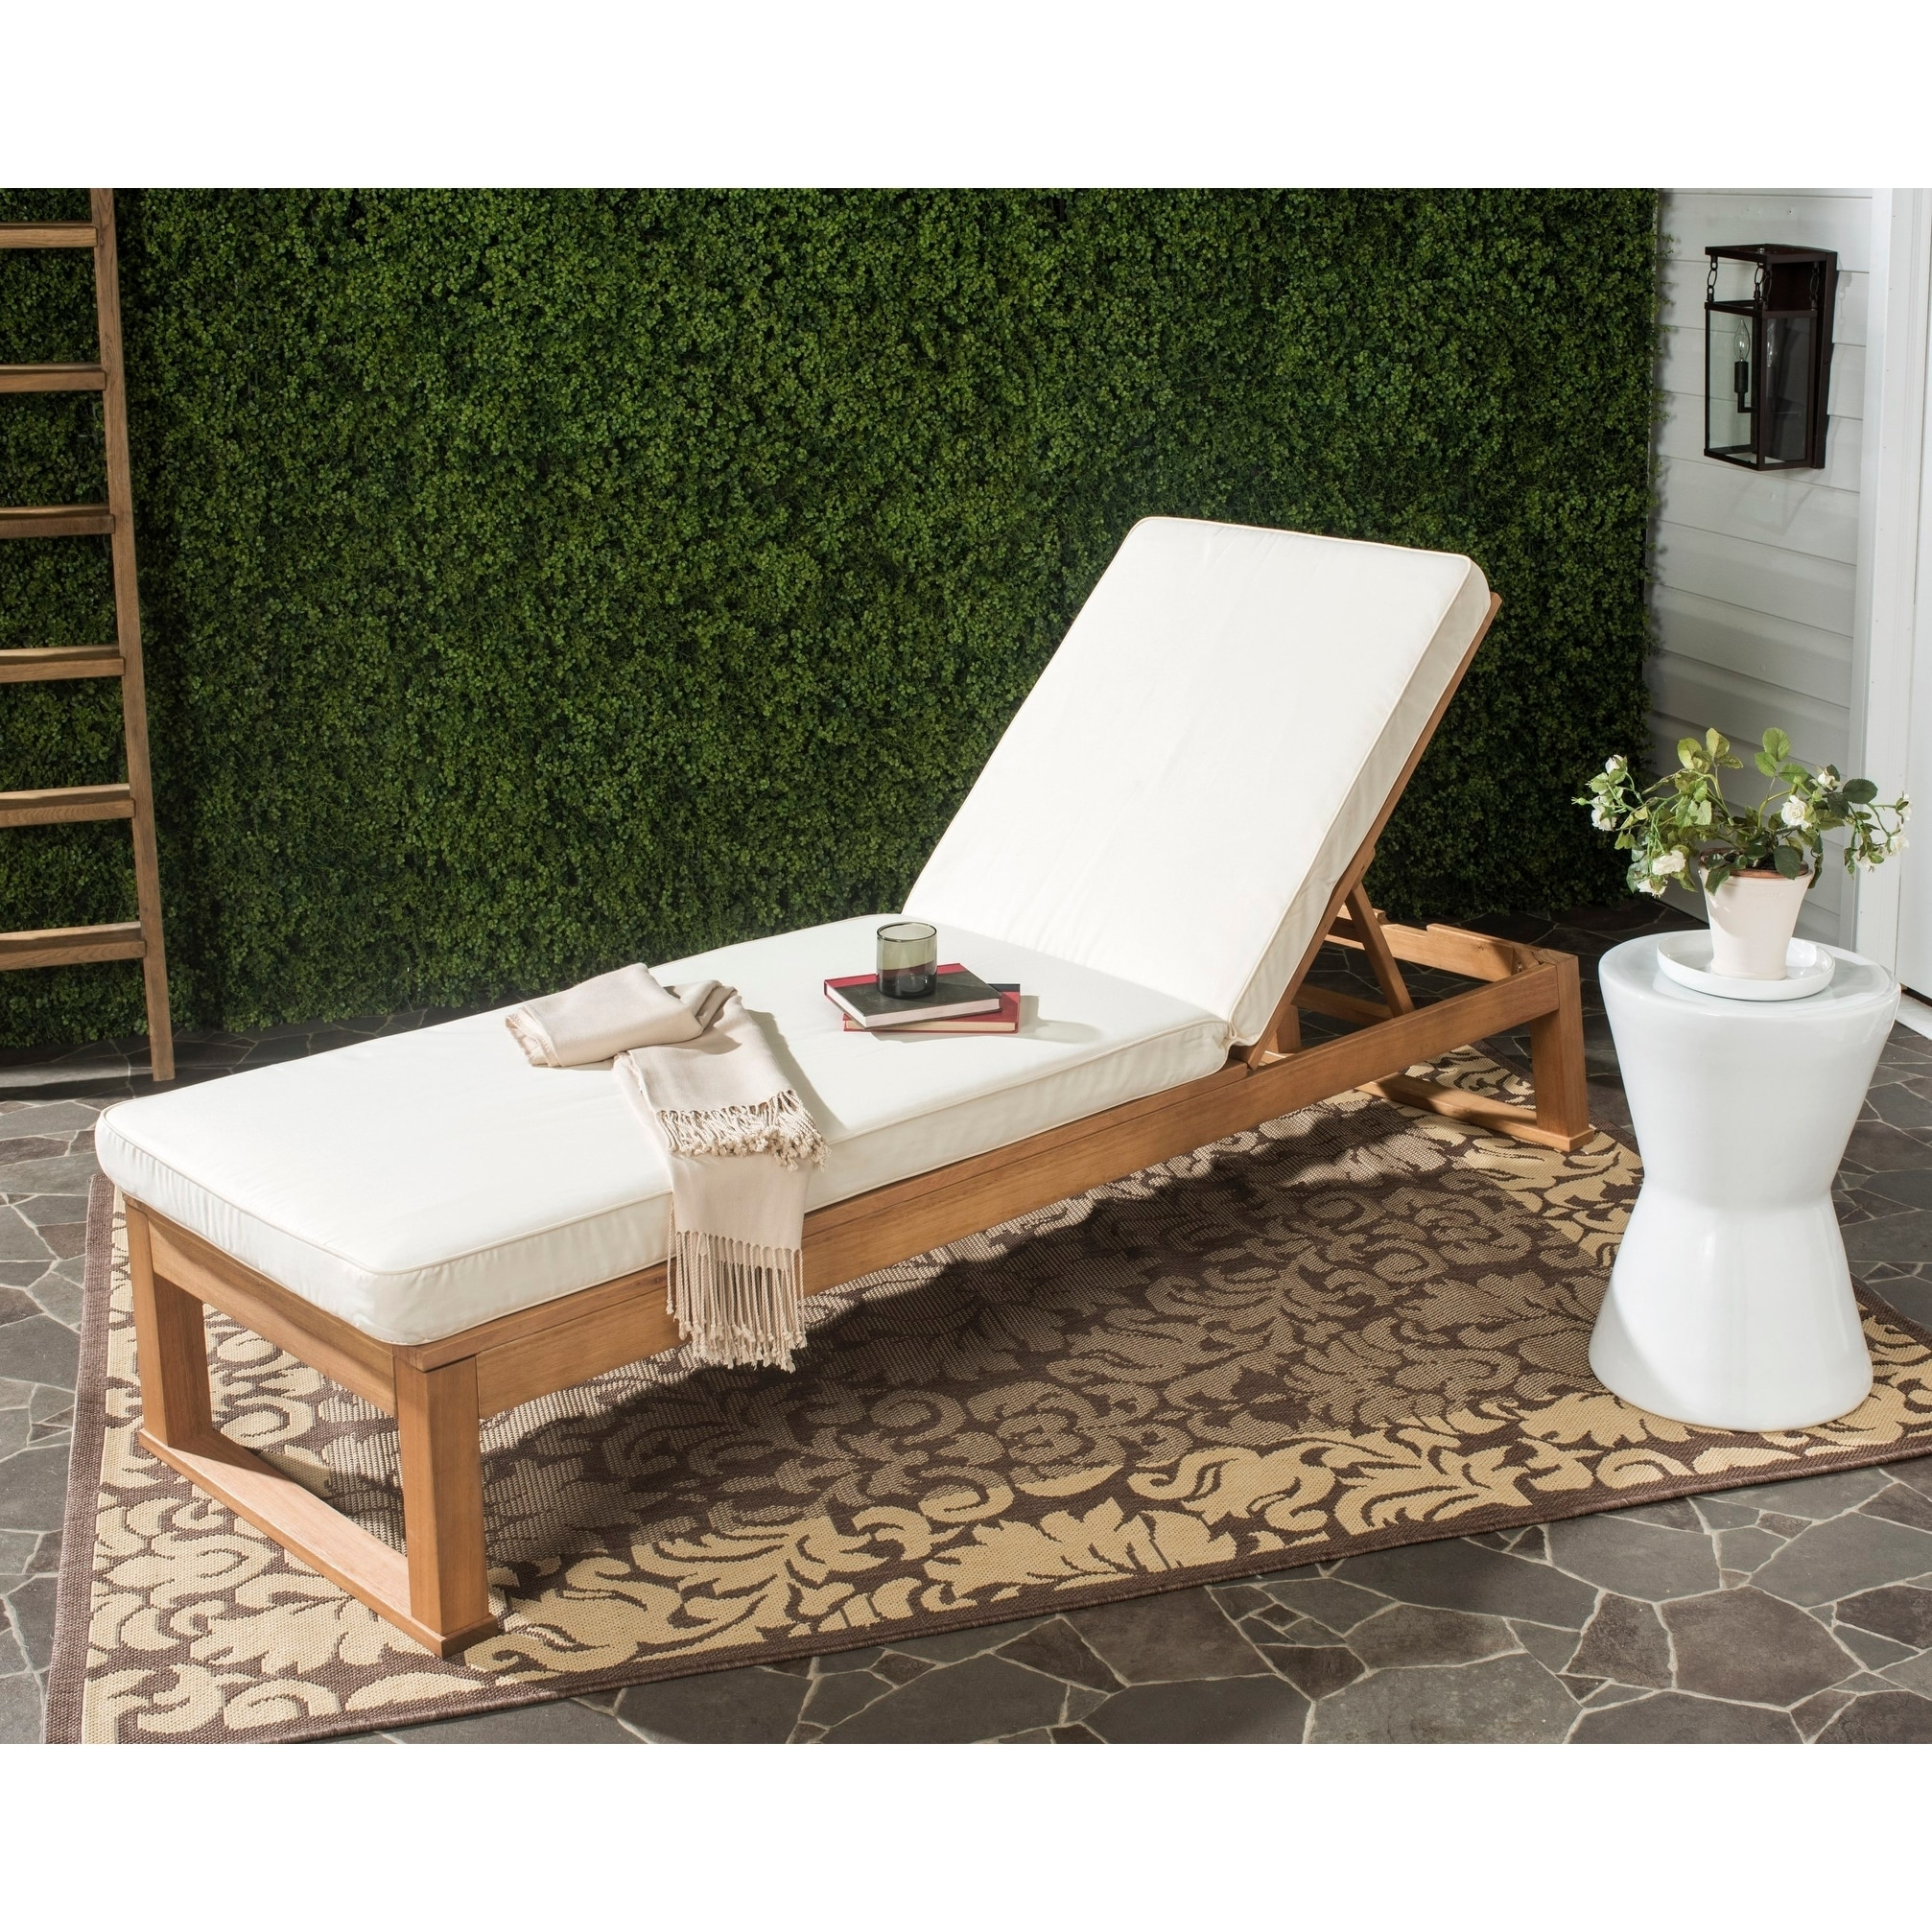 Teak Chaise Lounge Chairs Buy Teak Outdoor Chaise Lounges Online At Overstock Our Best